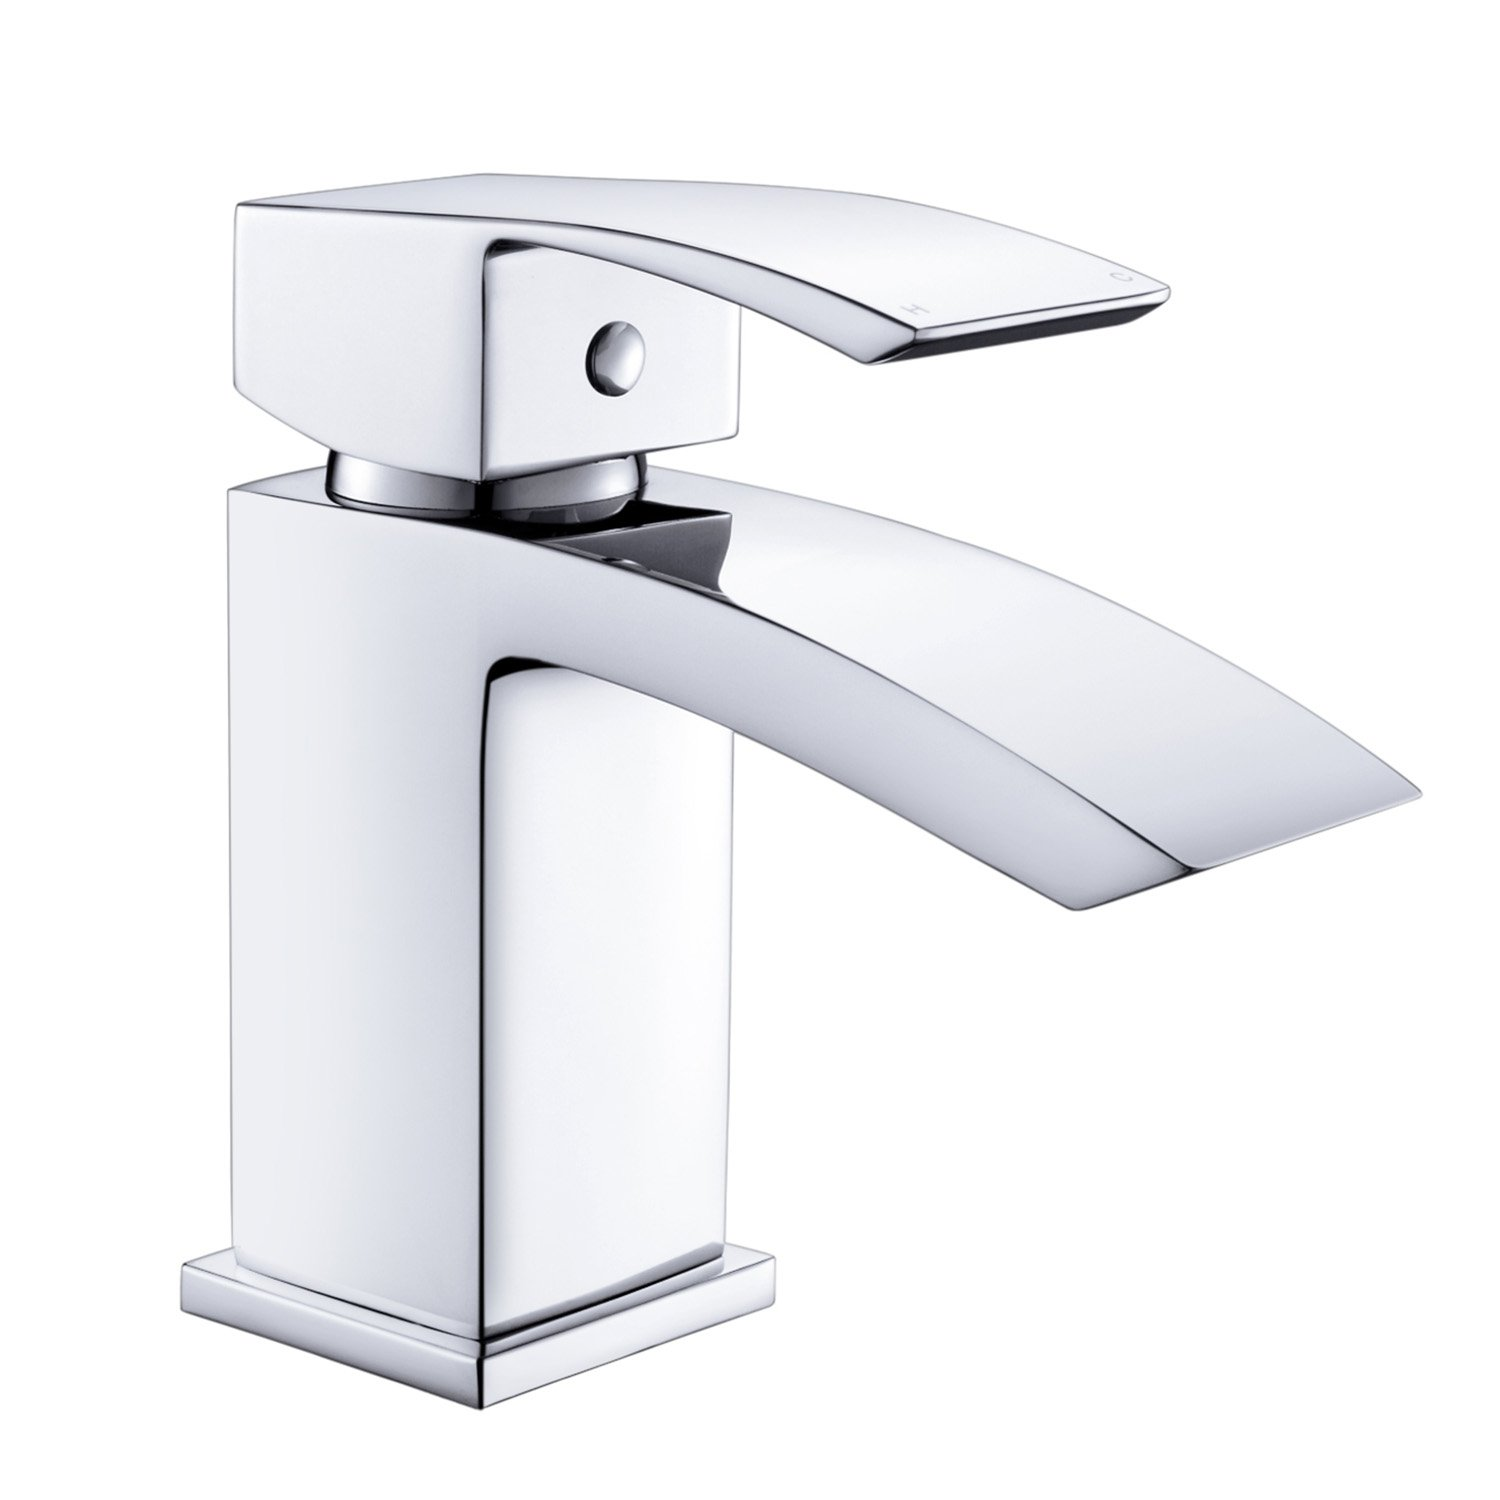 Celala Square Thermostatic Bar Mixer Shower Set Head + Handset Chrome